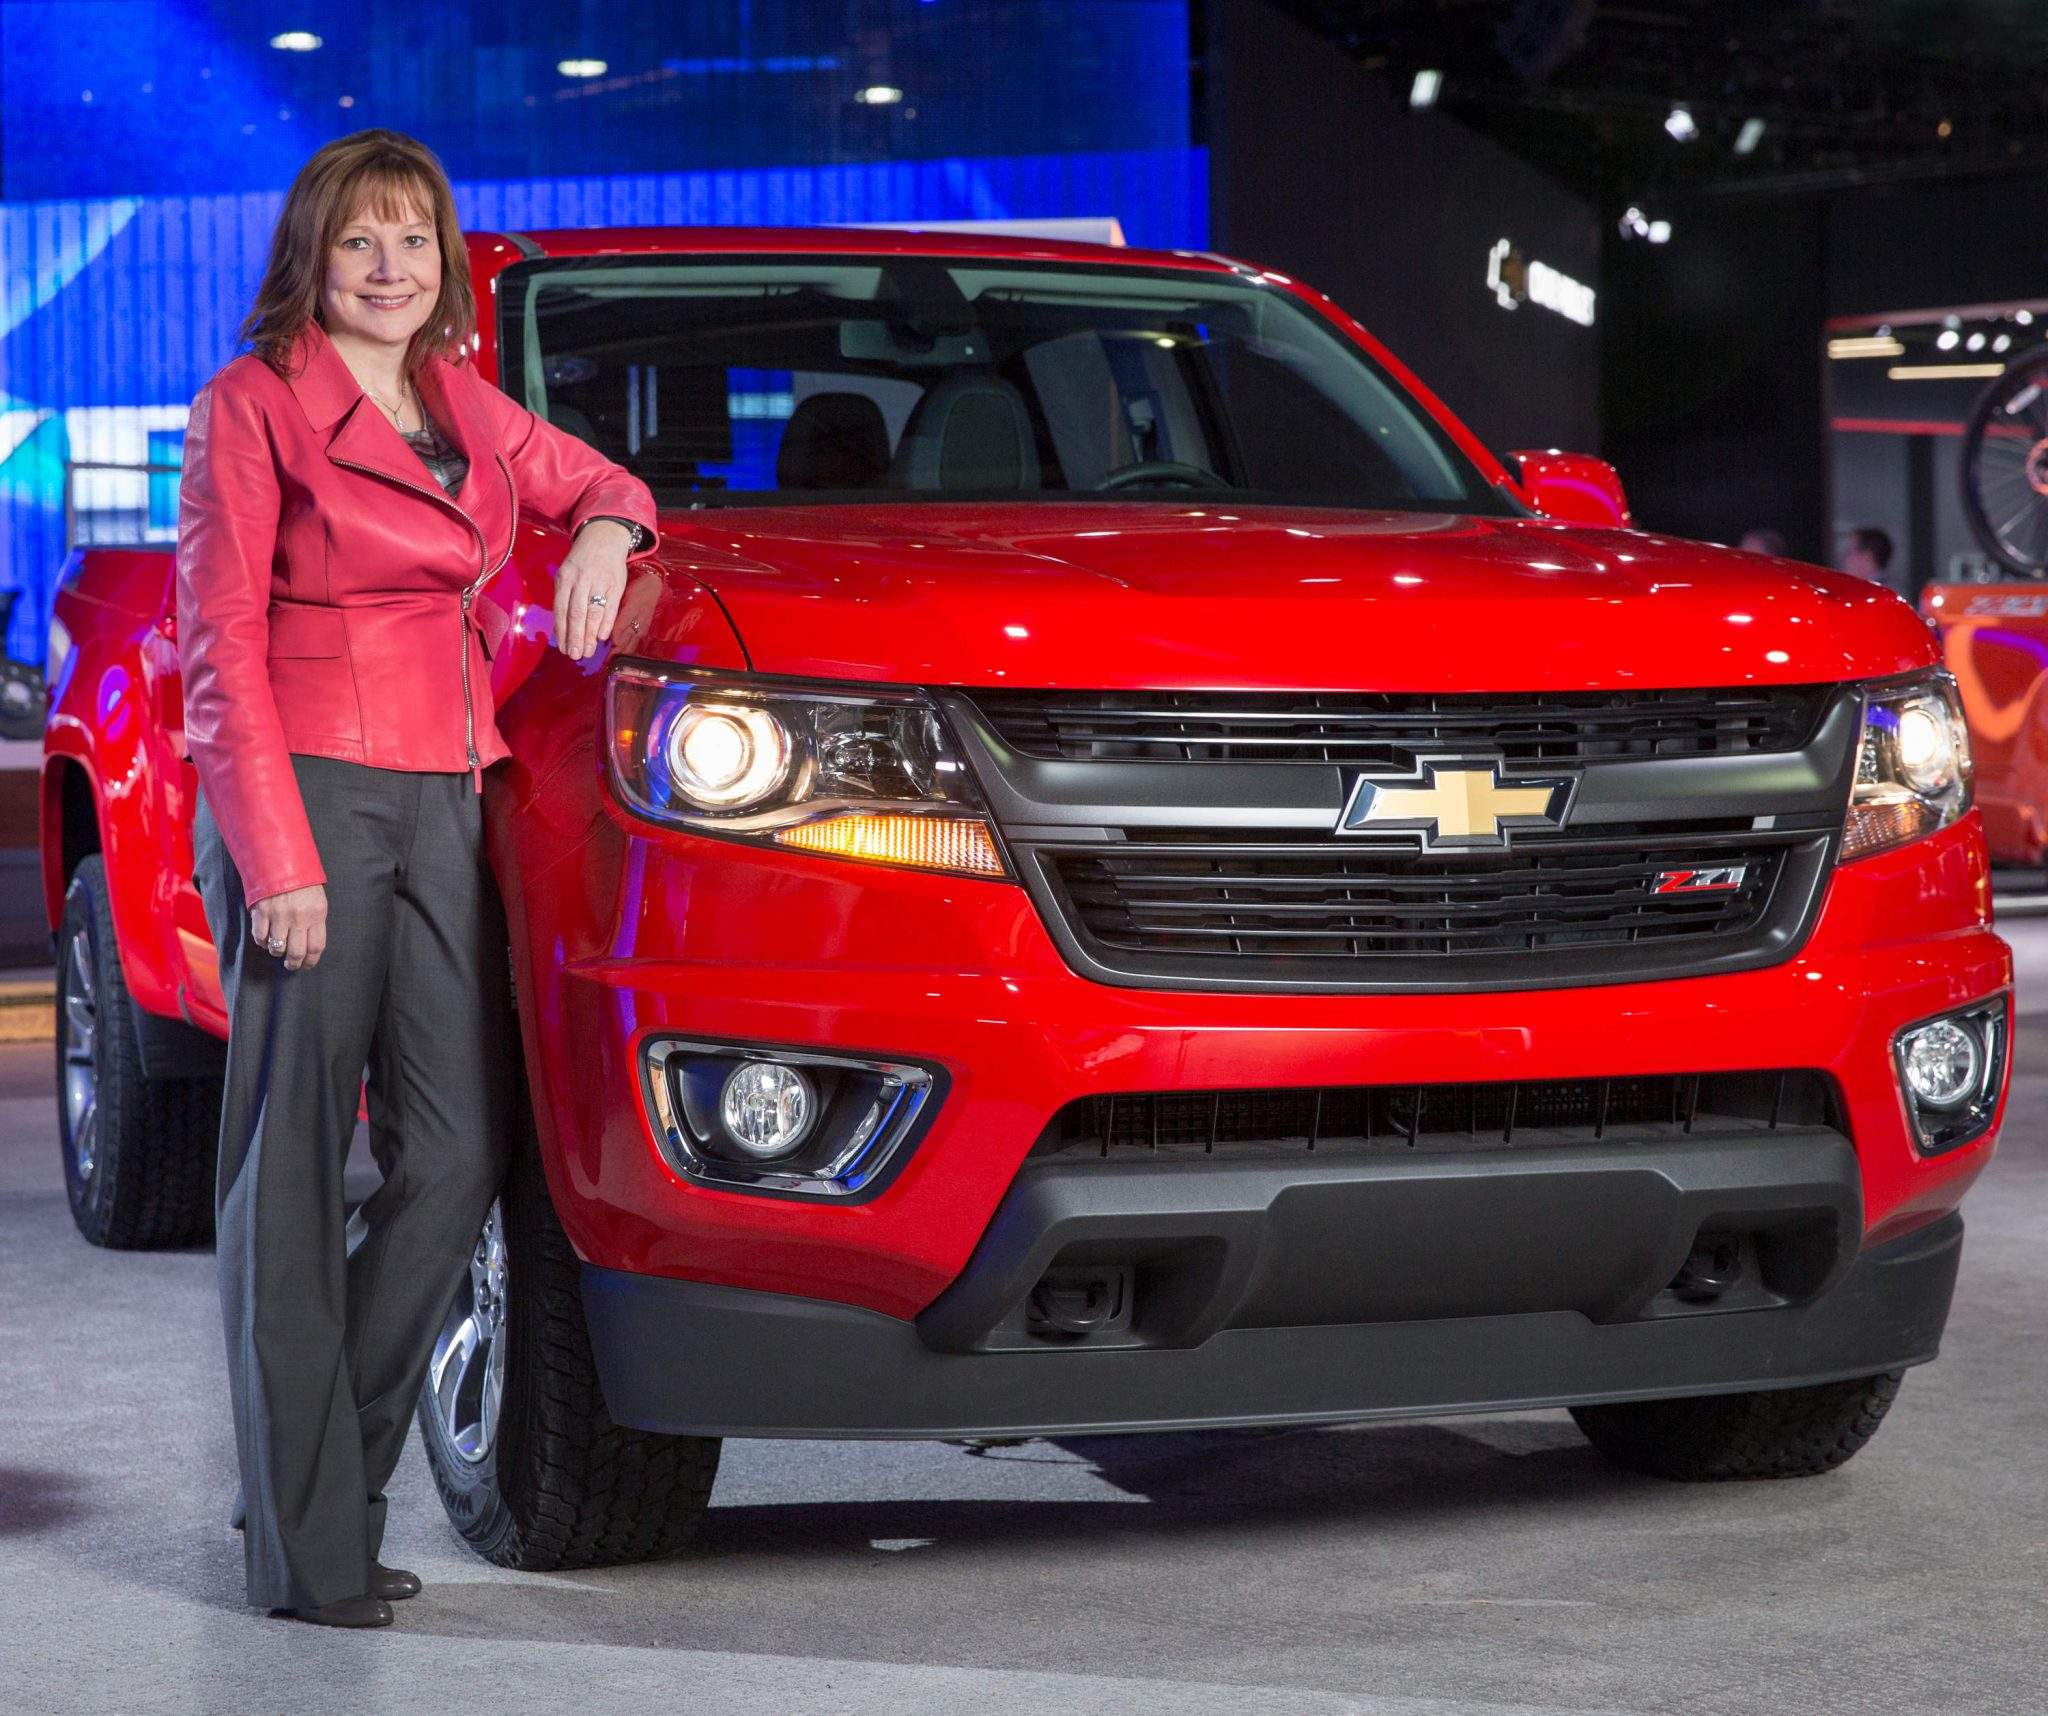 Colorado Named Cars.com Best Pickup of 2015 - The News Wheel